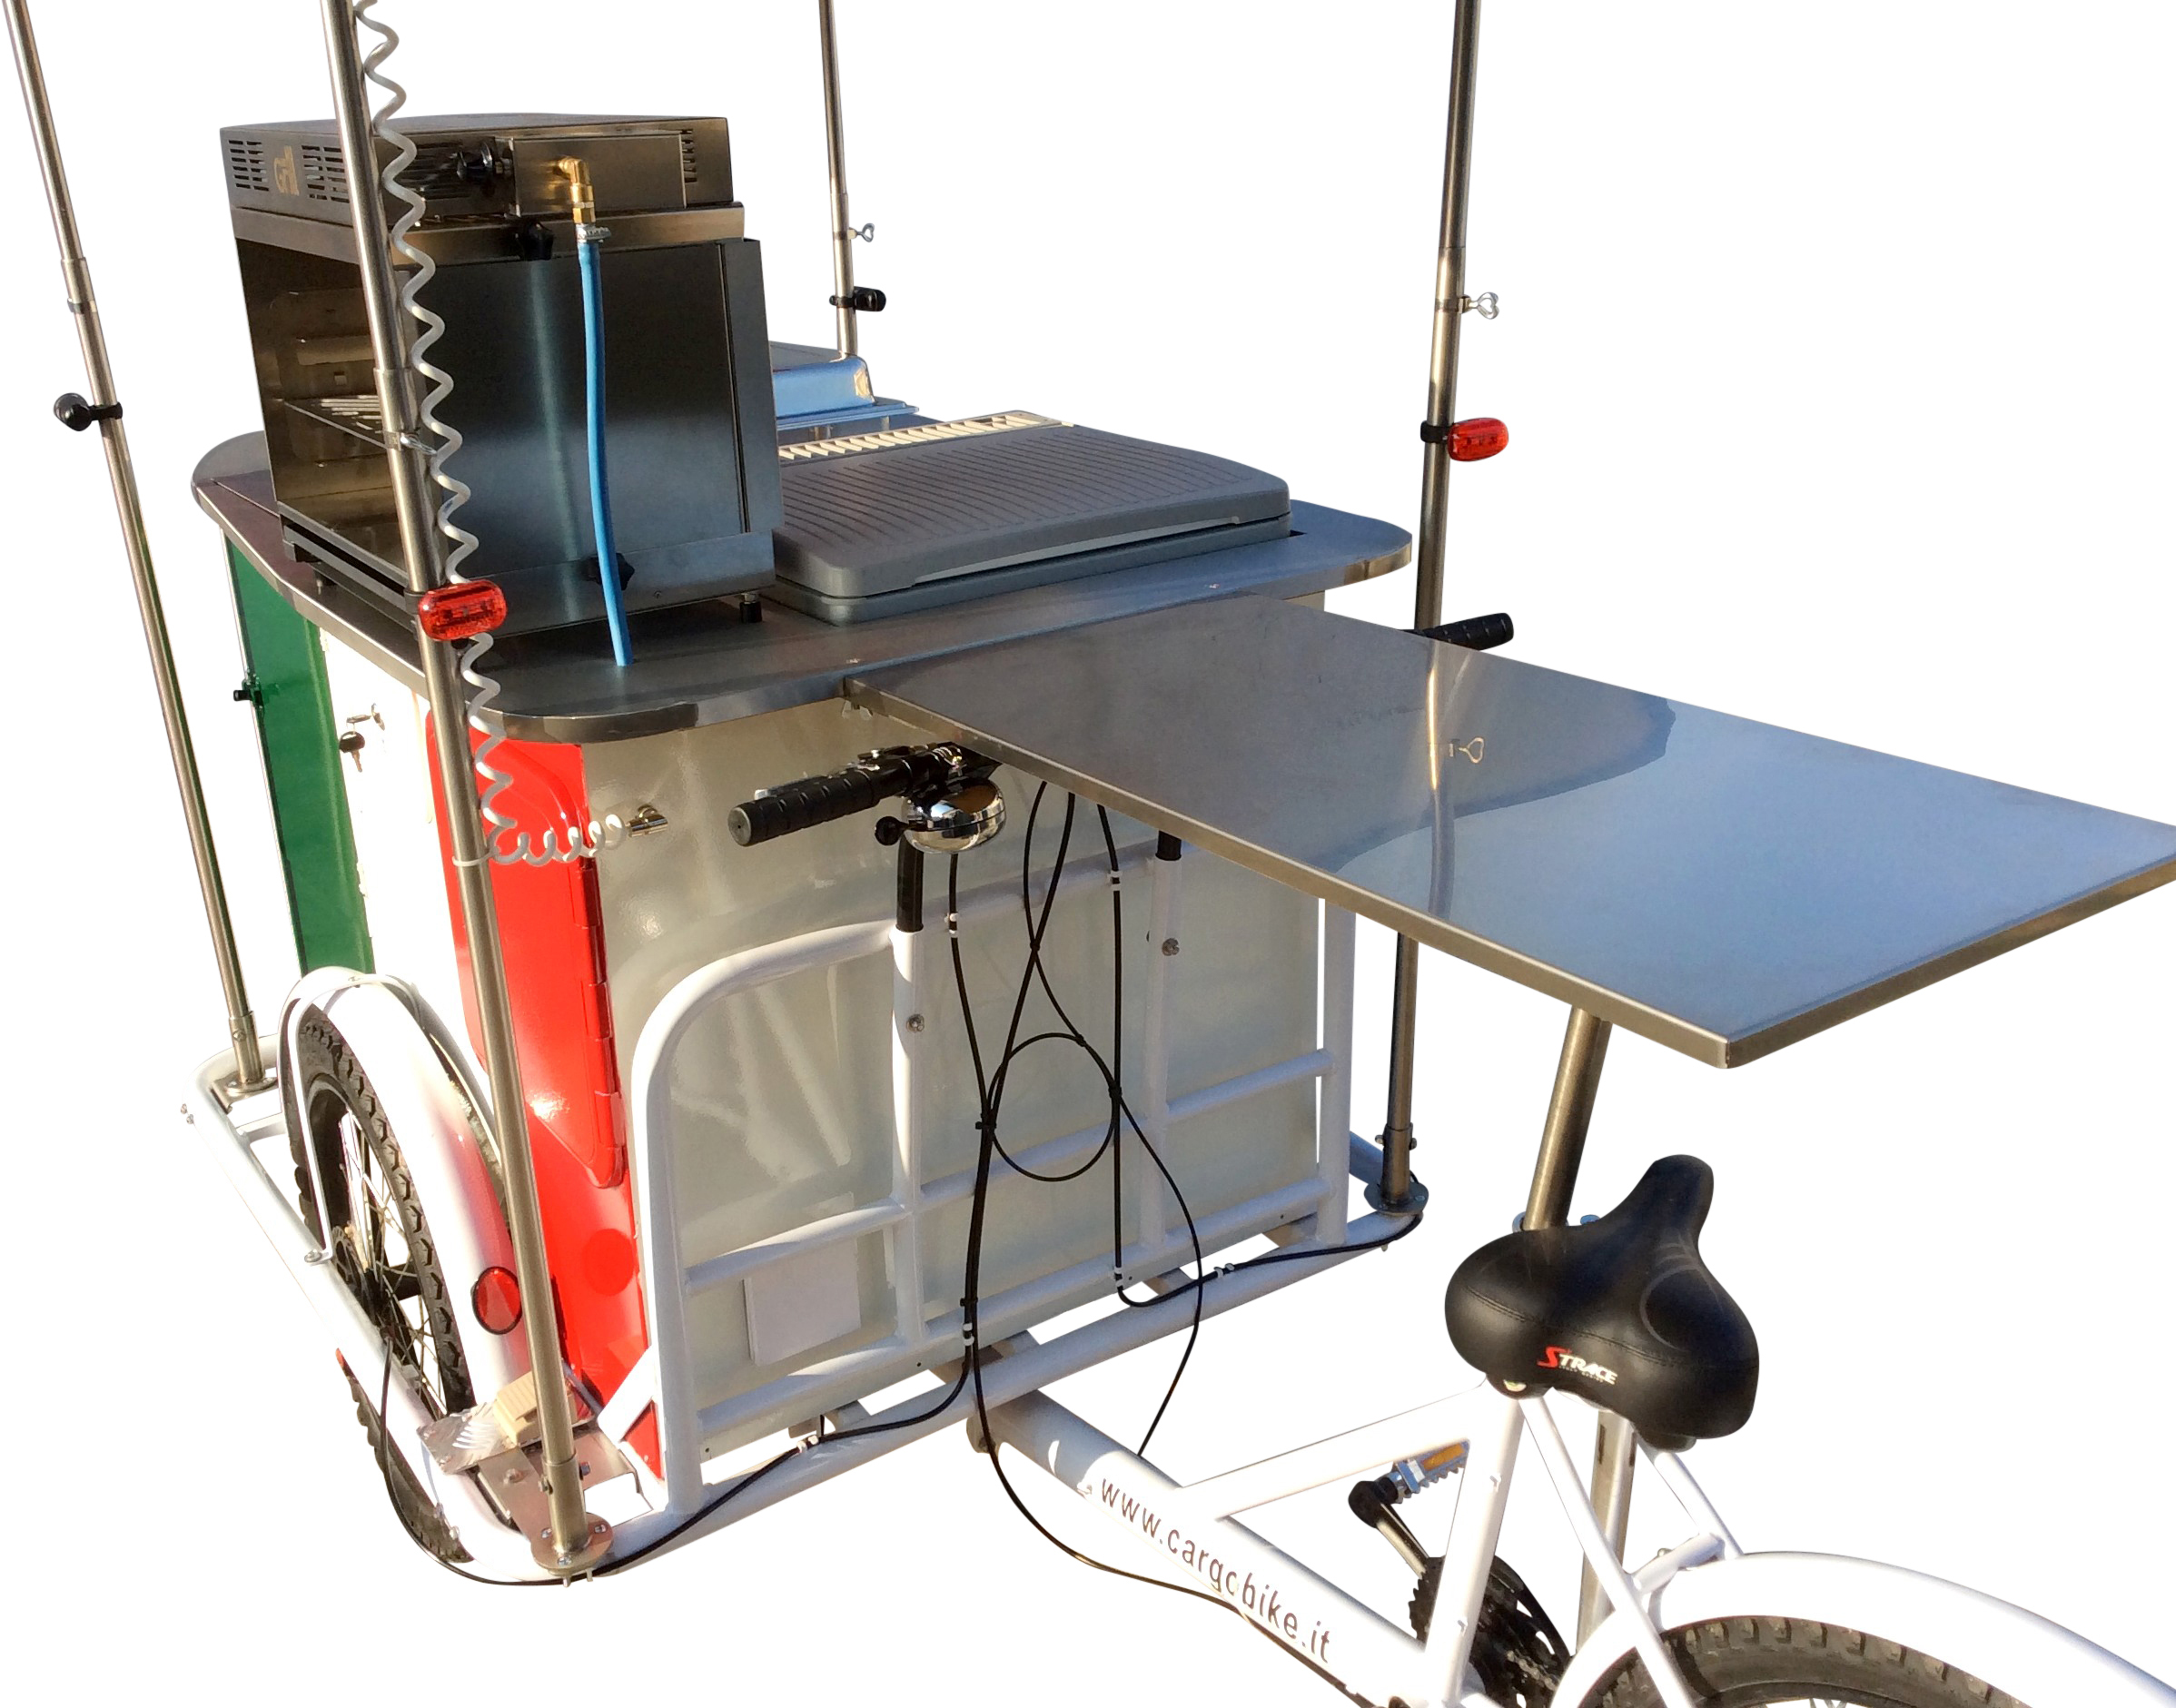 STREET_FOOD_GRILL_REVIVAL_TRICICLO_CARGO_BIKE_23